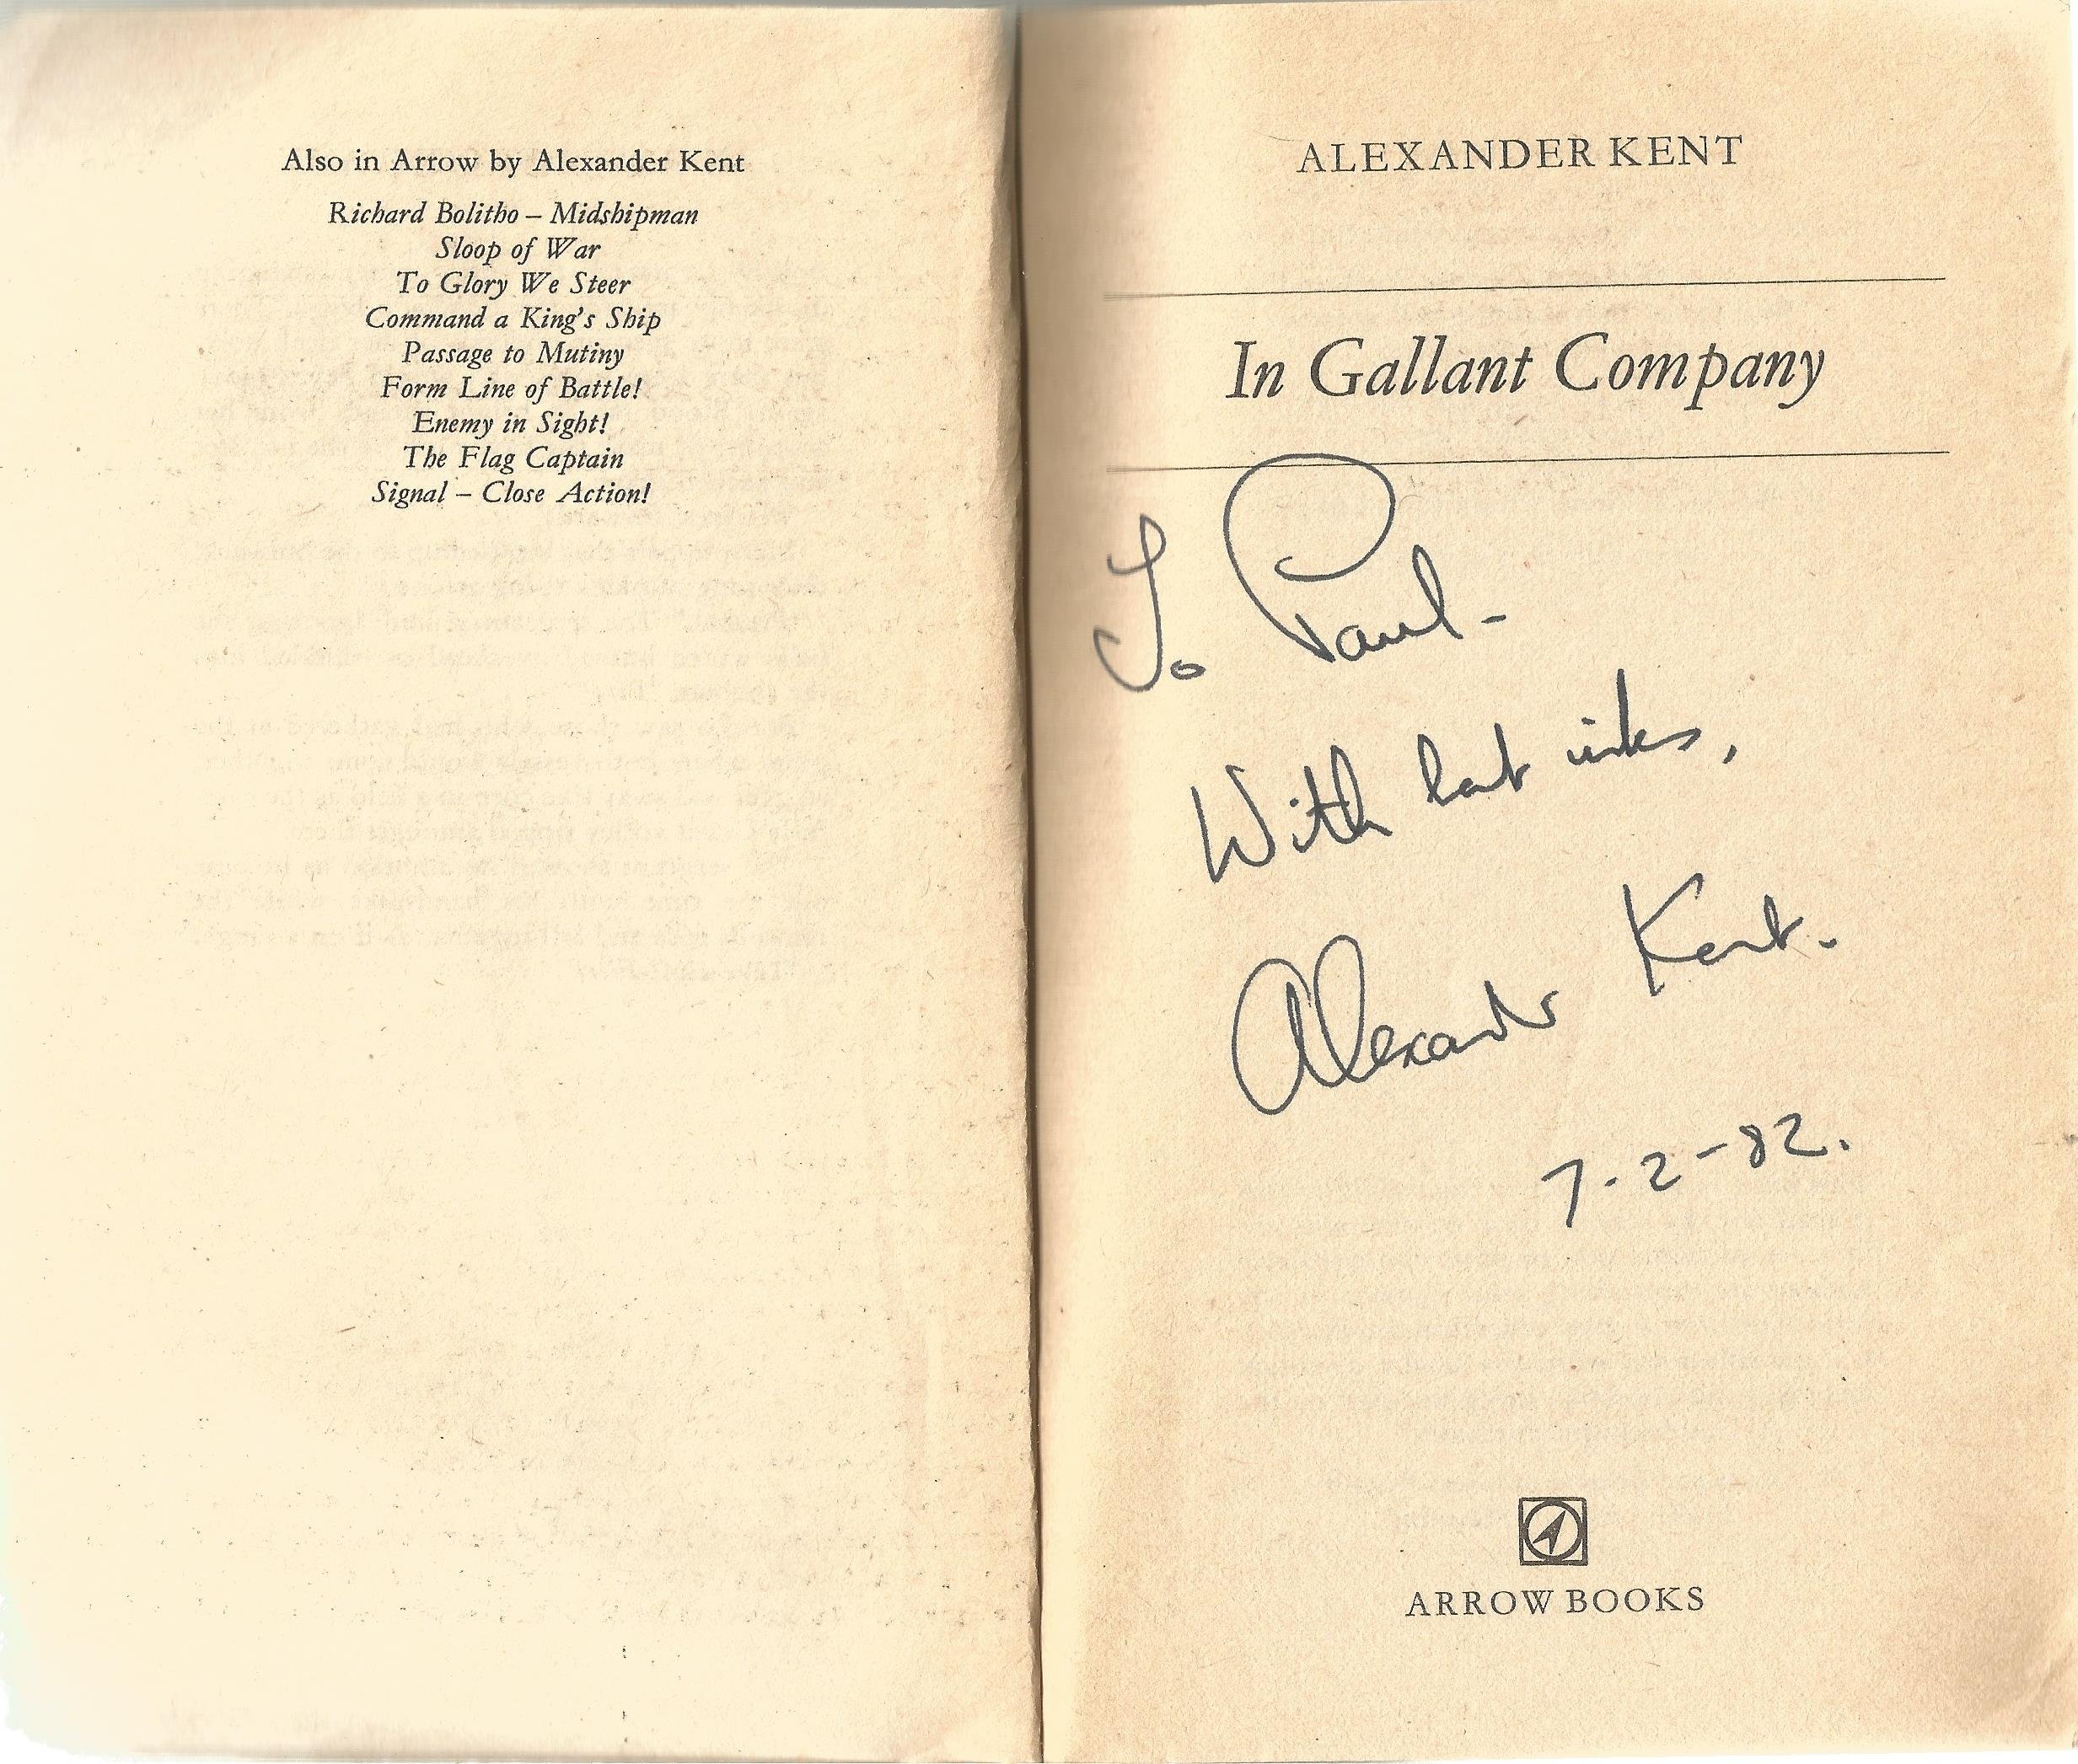 Alexander Kent Paperback Book In Gallant Company signed by the Author on the Title Page some - Image 2 of 2